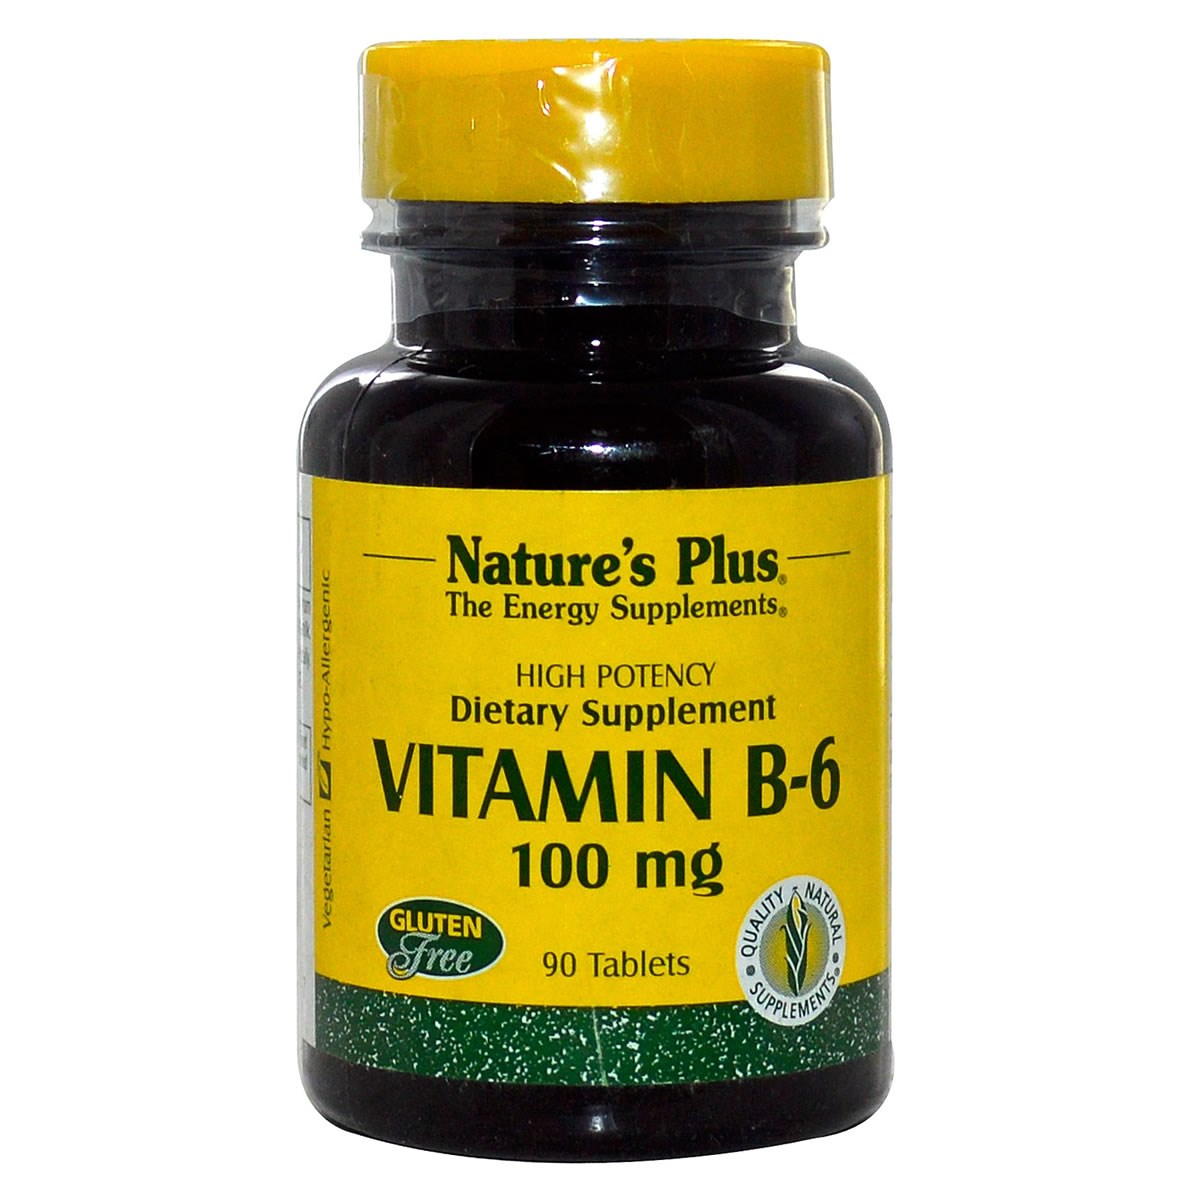 Natures Plus Vitamin B-6 100 mg Tablets